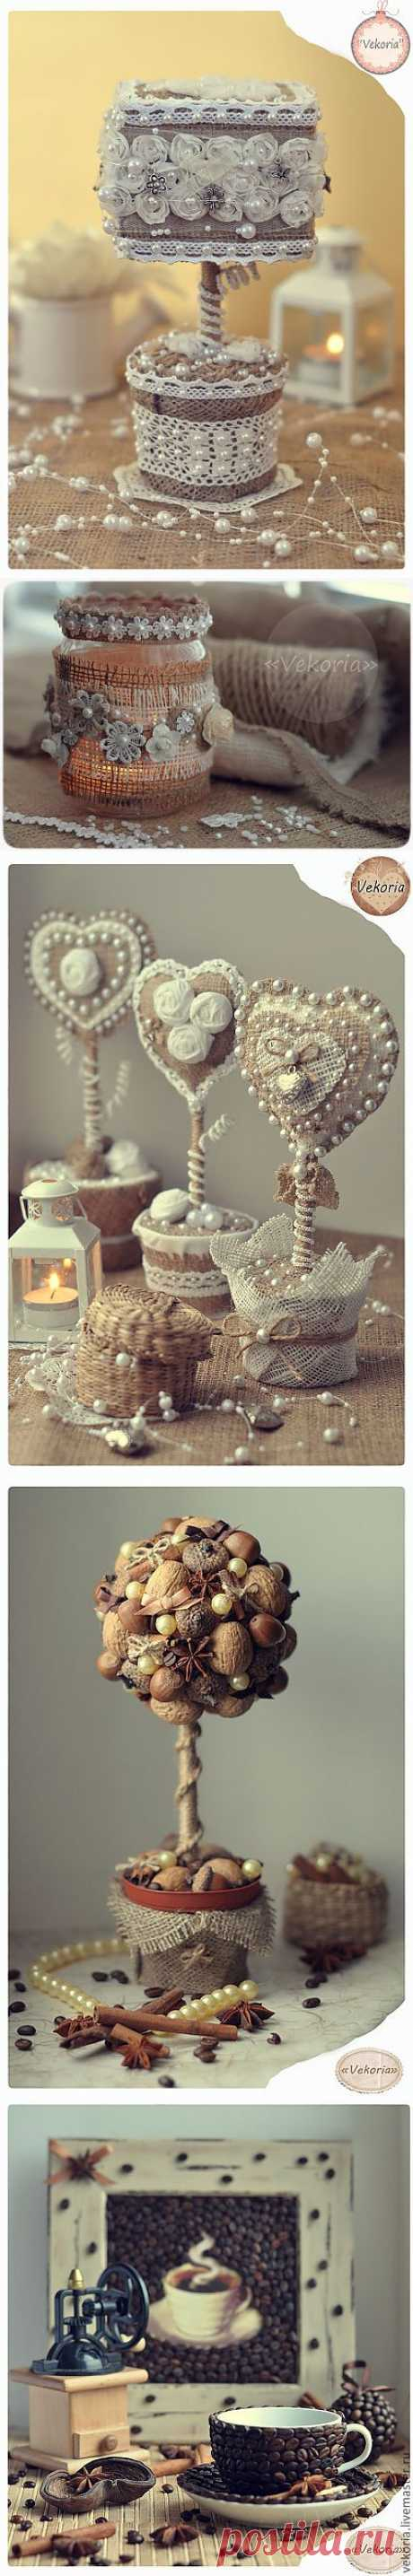 Vintage works from a sacking, laces, jute and coffee grains. A master class in a candlestick from Victoria Sakur.